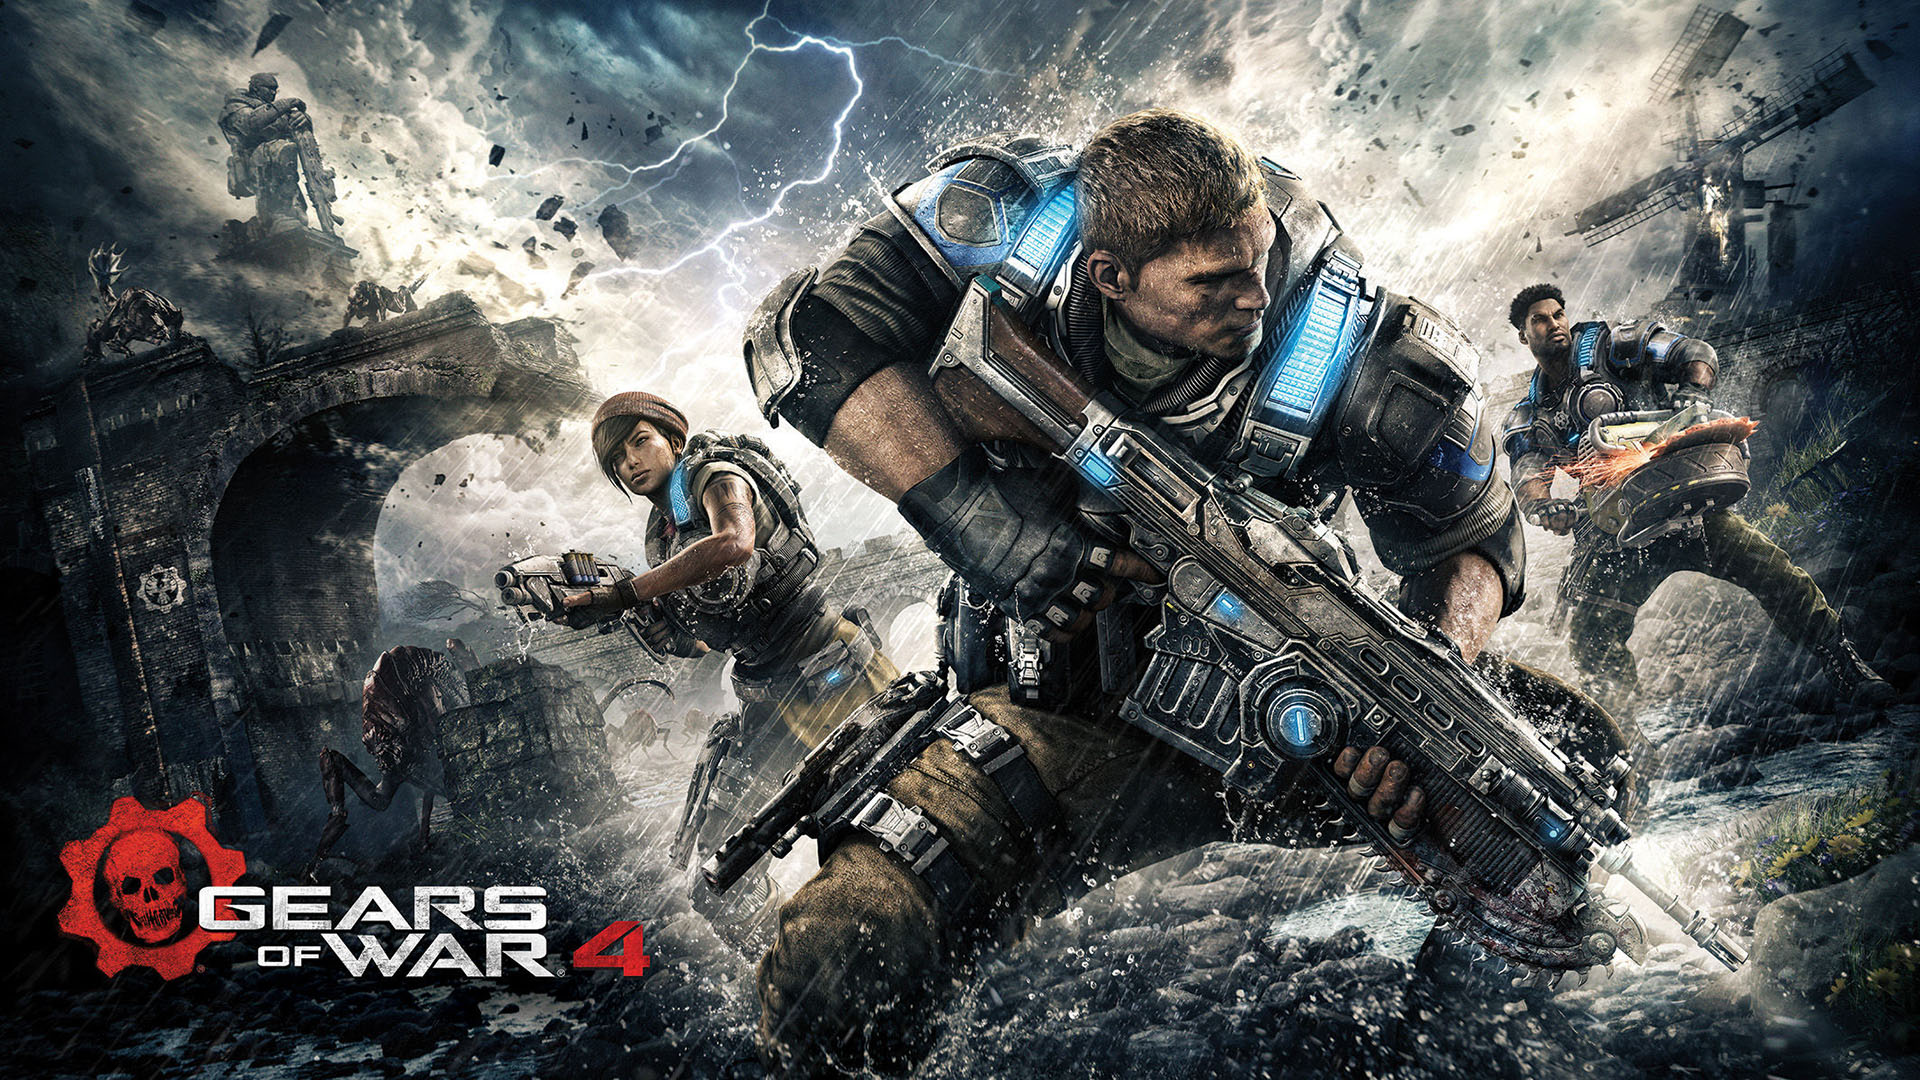 gears-of-war-4-1.jpg